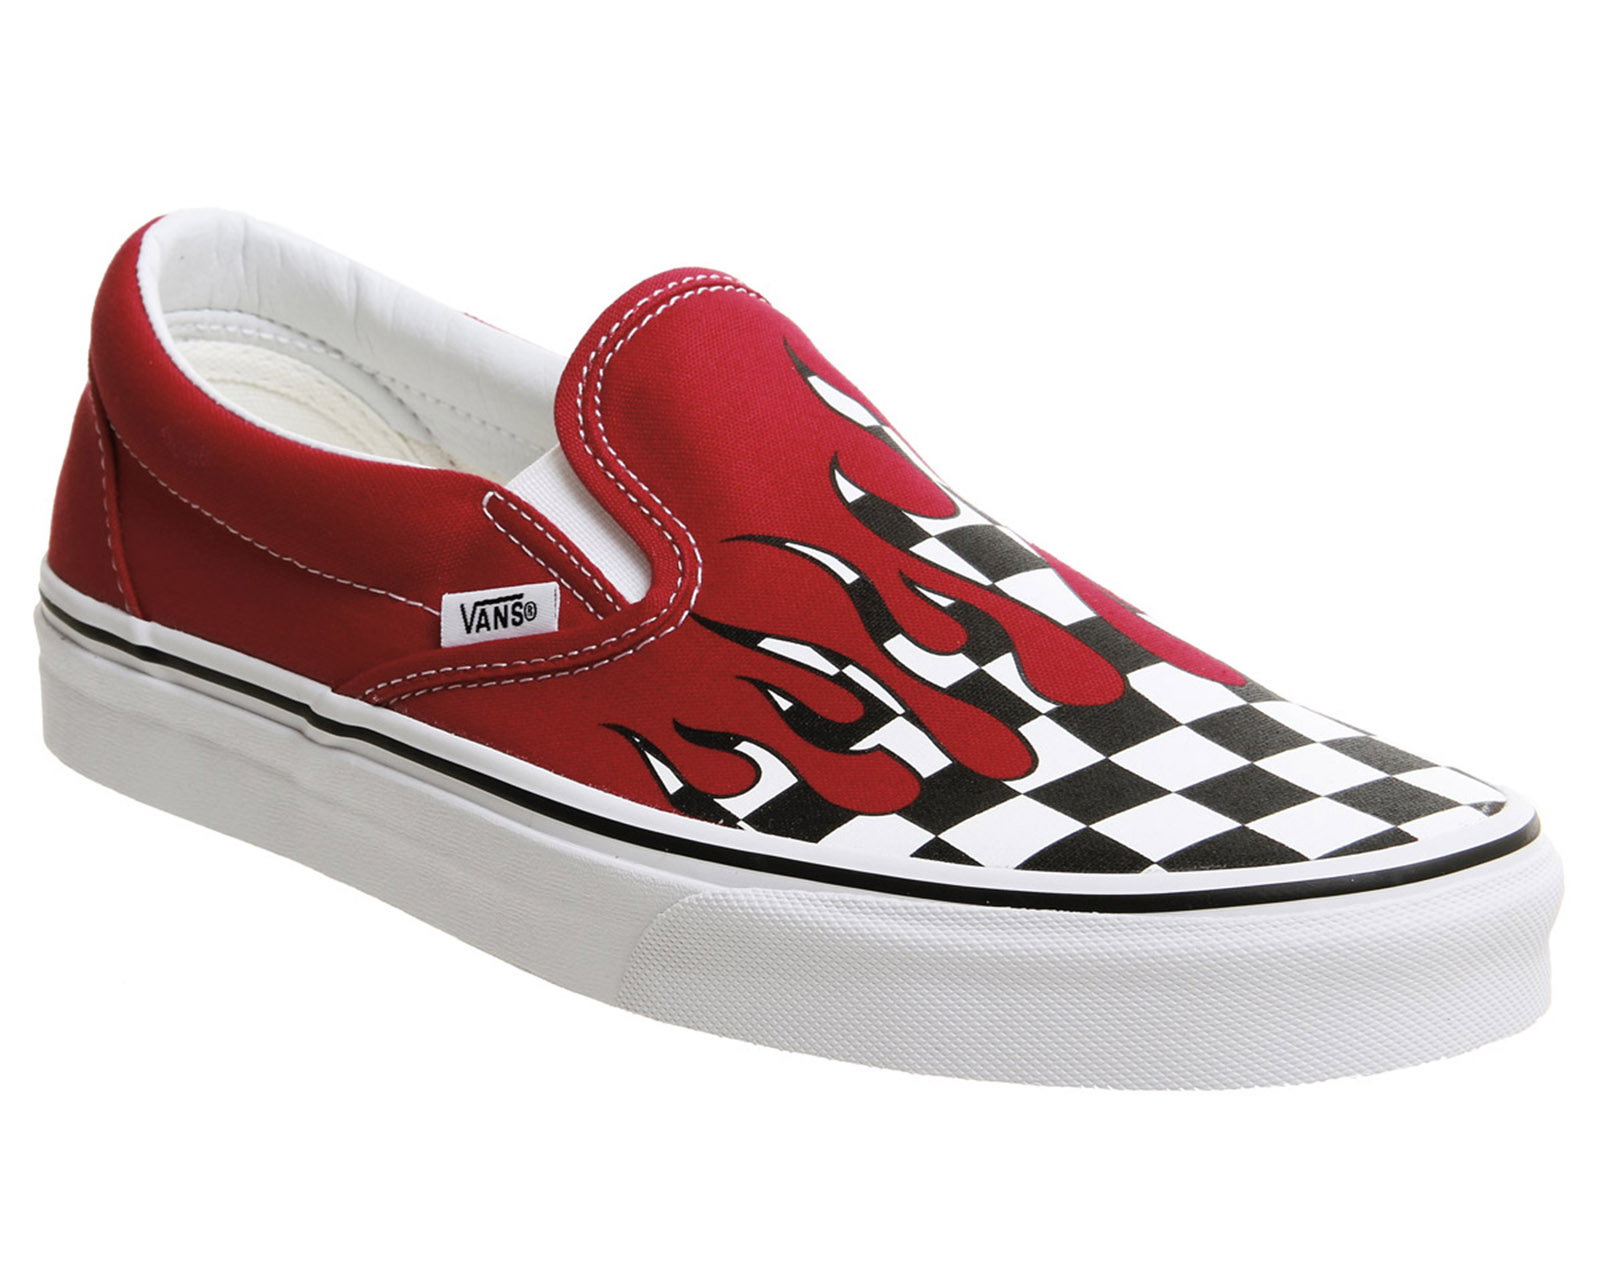 5fe7ecca8e45 Sentinel Mens Vans Vans Classic Slip On Trainers Racing Red Checkerboard  Flame Trainers S